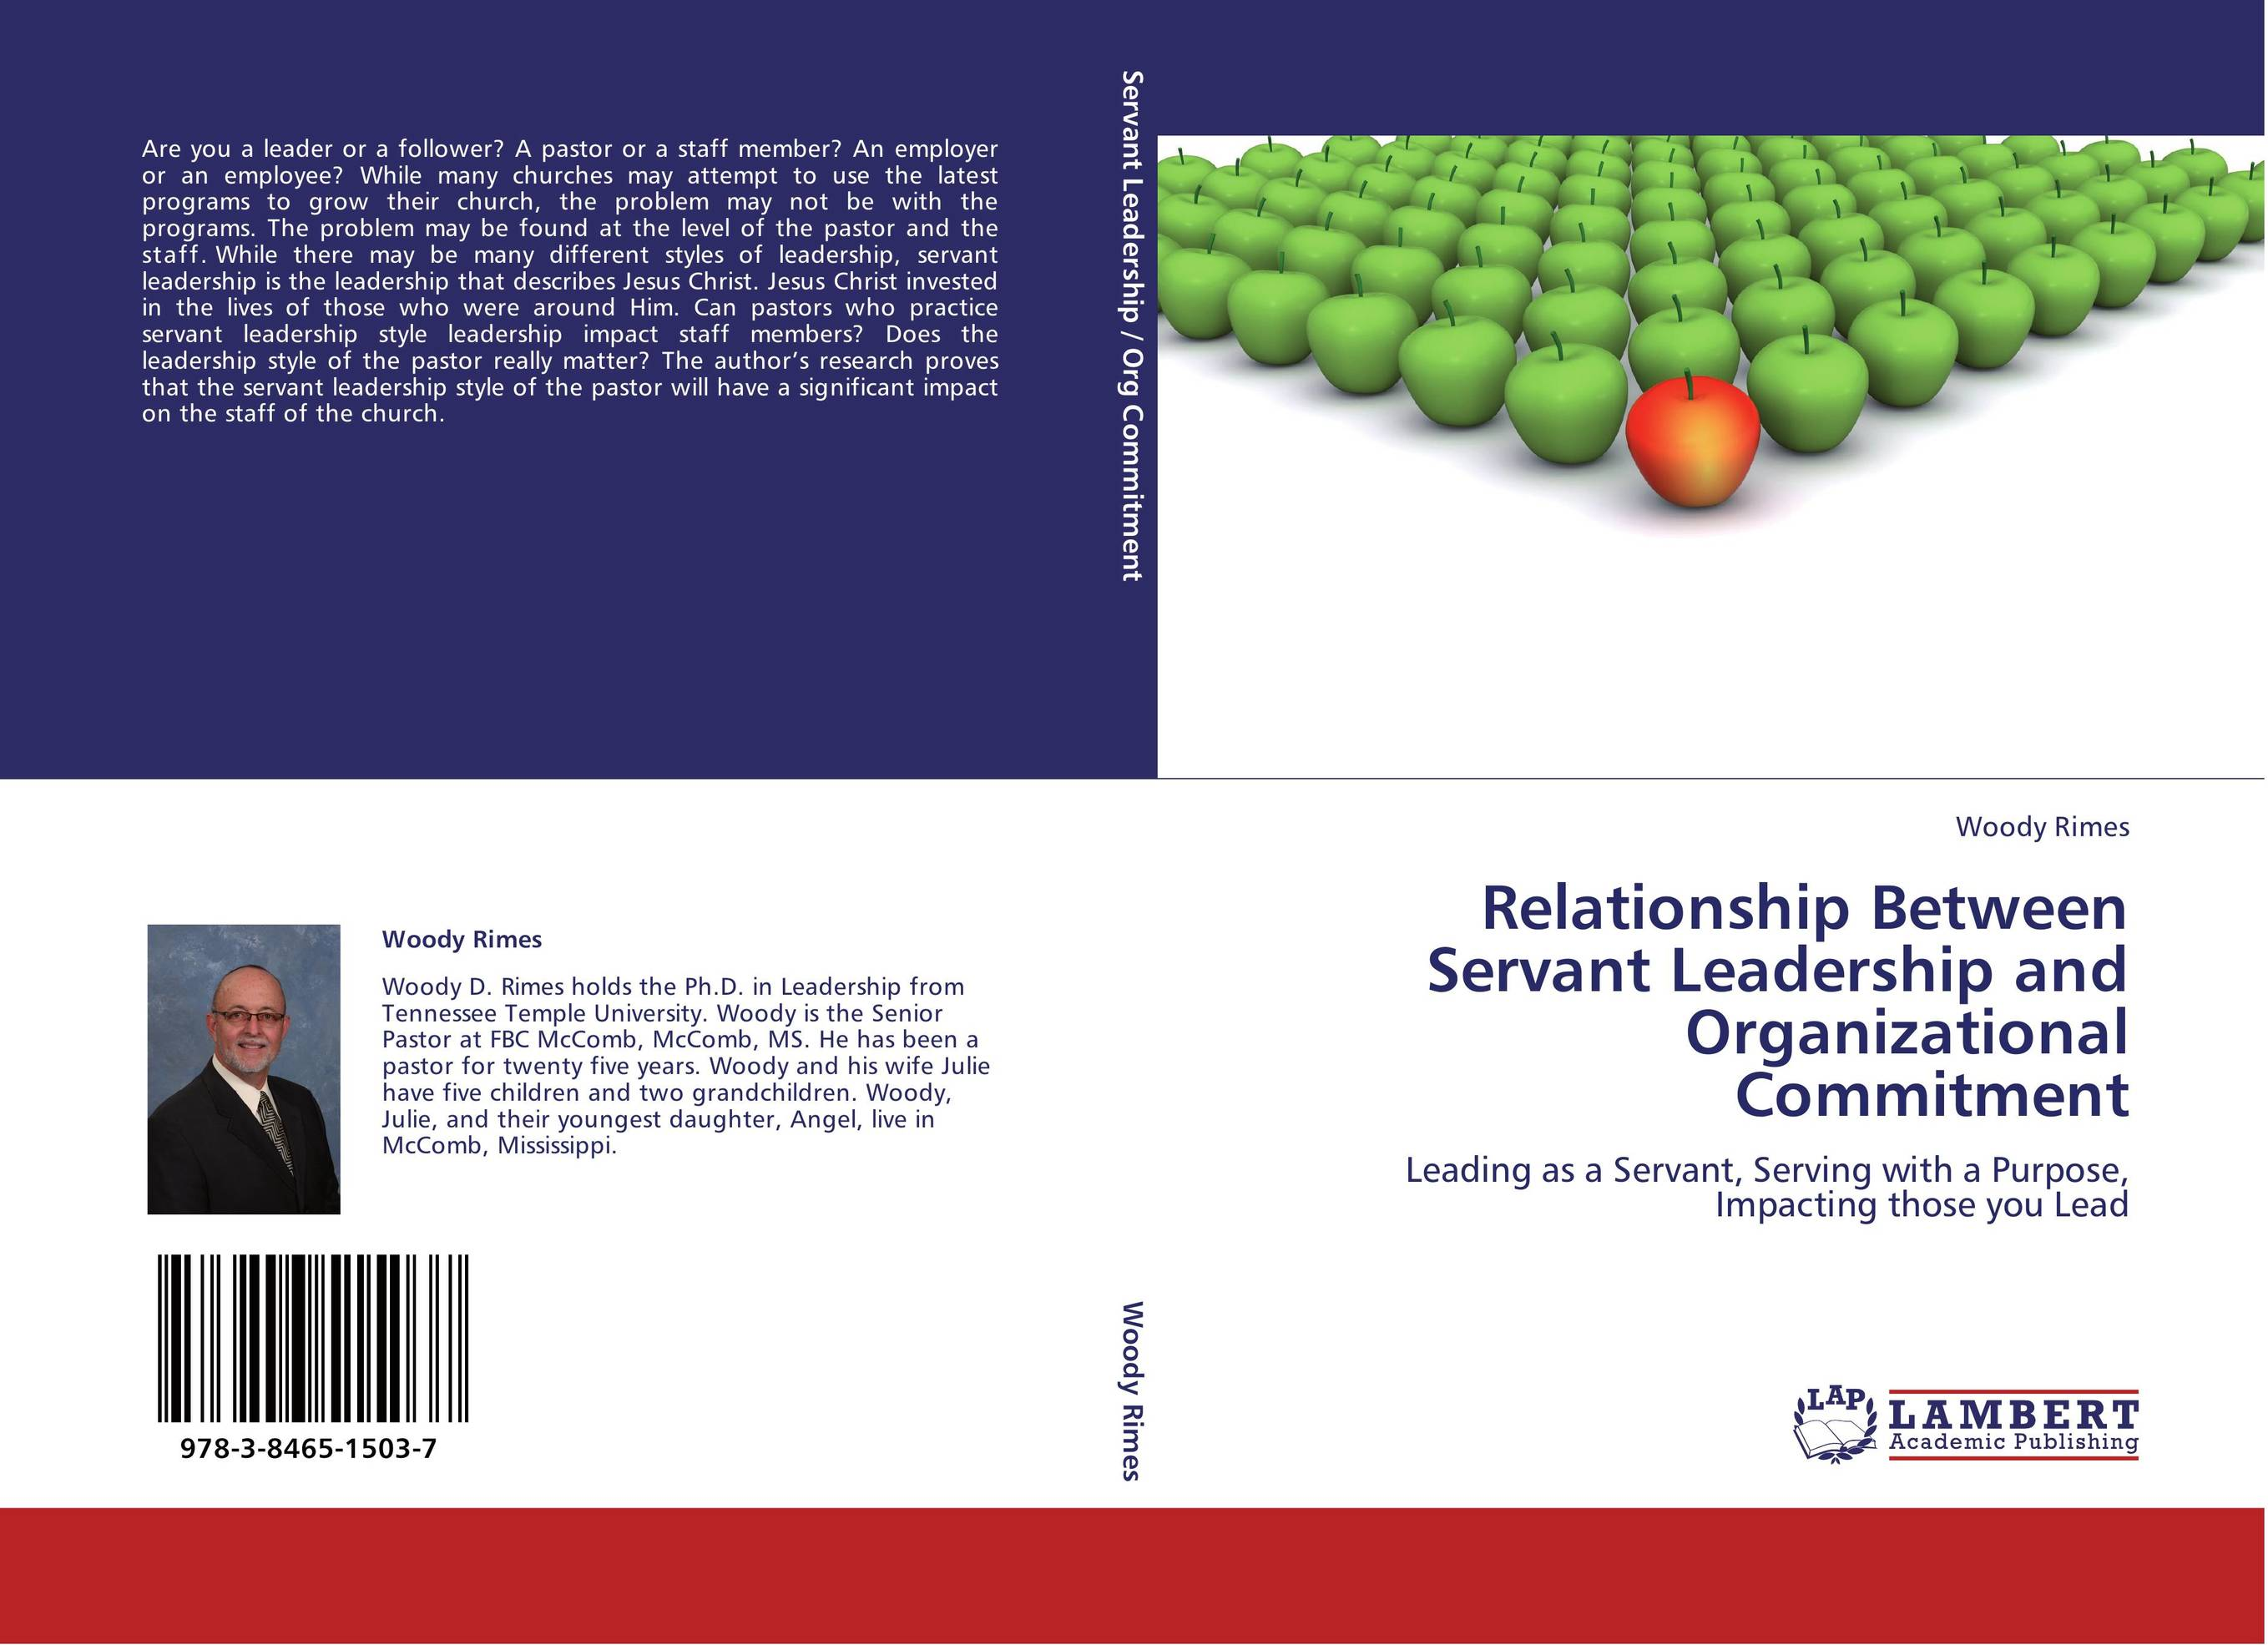 servand and transformational leadership Thoughts on the servant leadership mindset thoughts on the servant leadership mindset skip navigation sign in search loading close yeah, keep it.